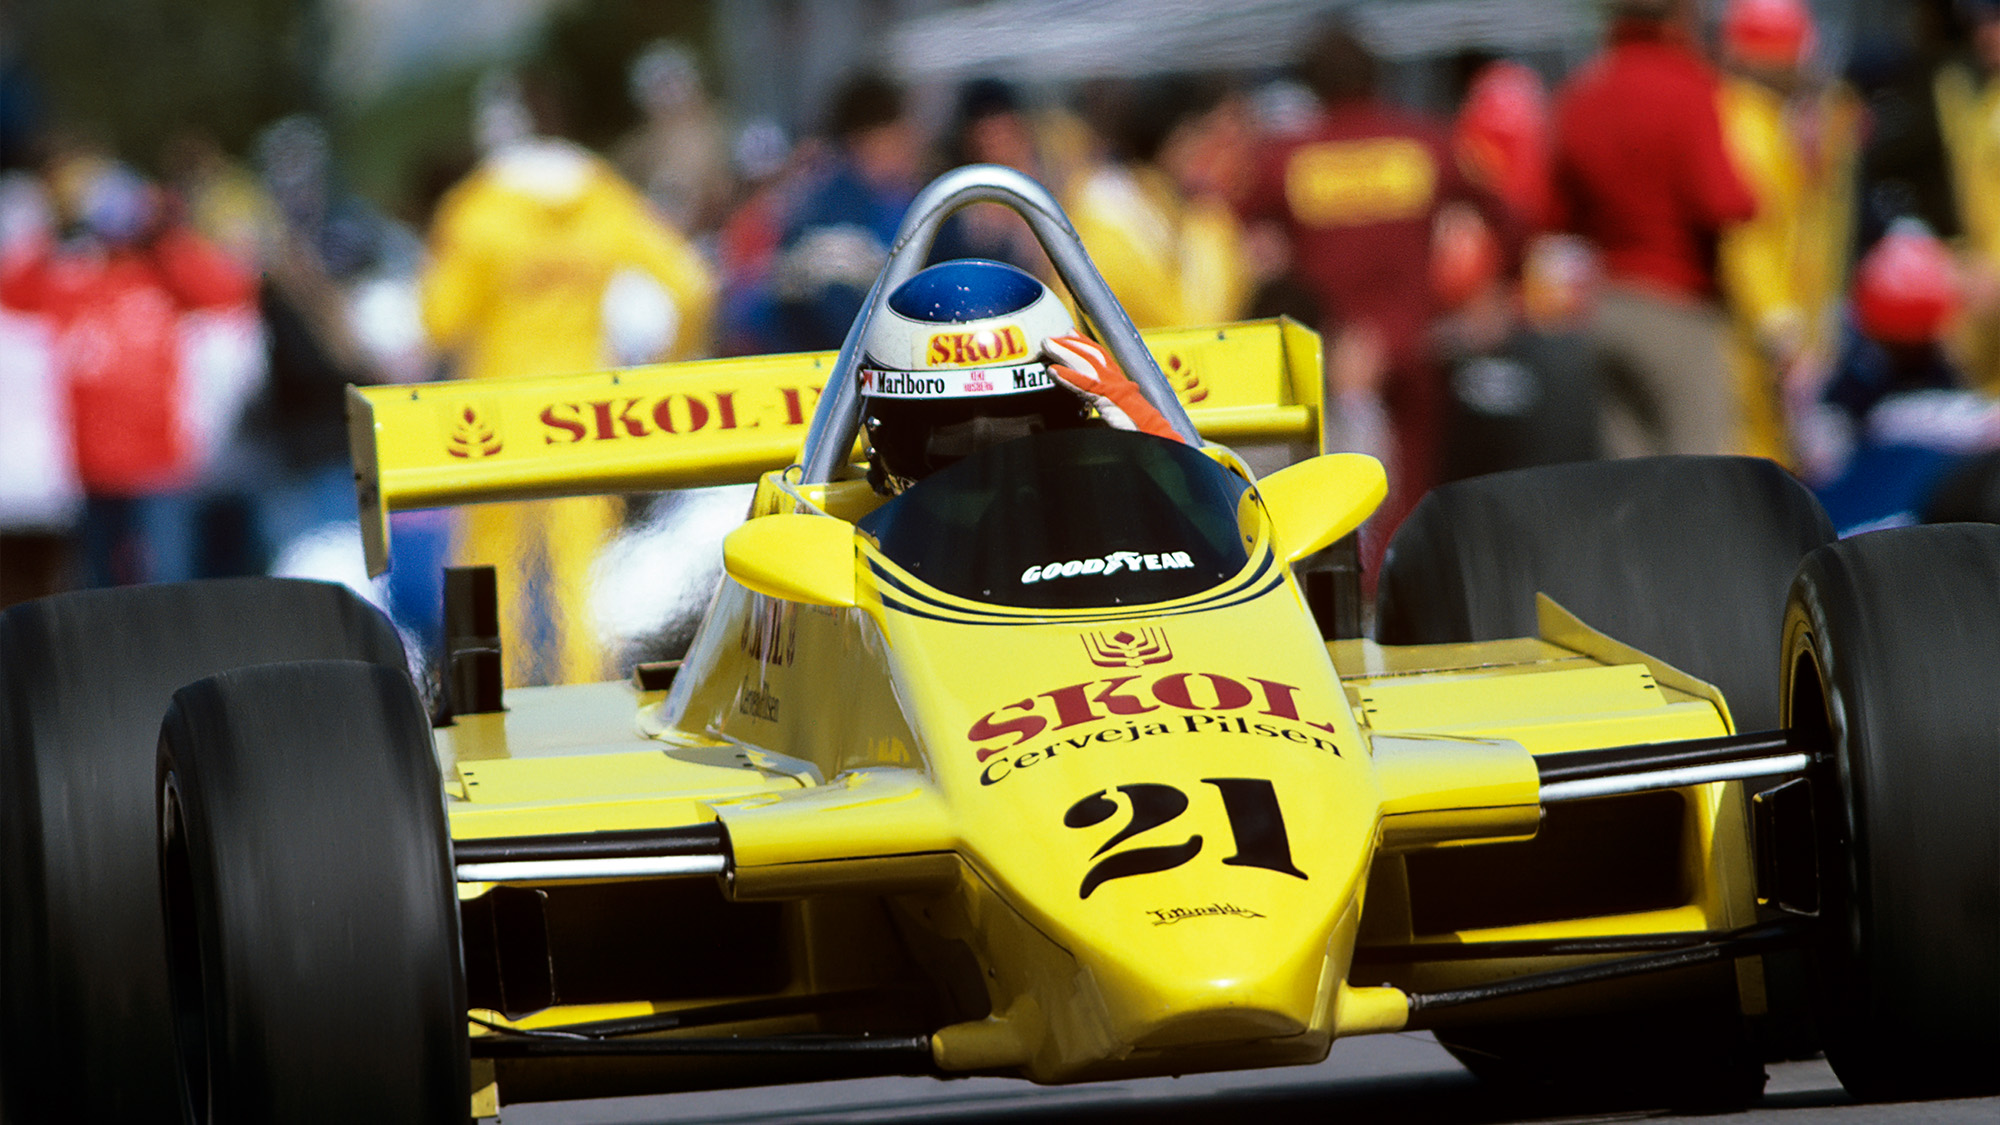 Keke Rosberg in the Fittipaldi-Ford F8 dueing the 1980 F1 Grand Prix of Canada at the Circuit Gilles Villeneuve